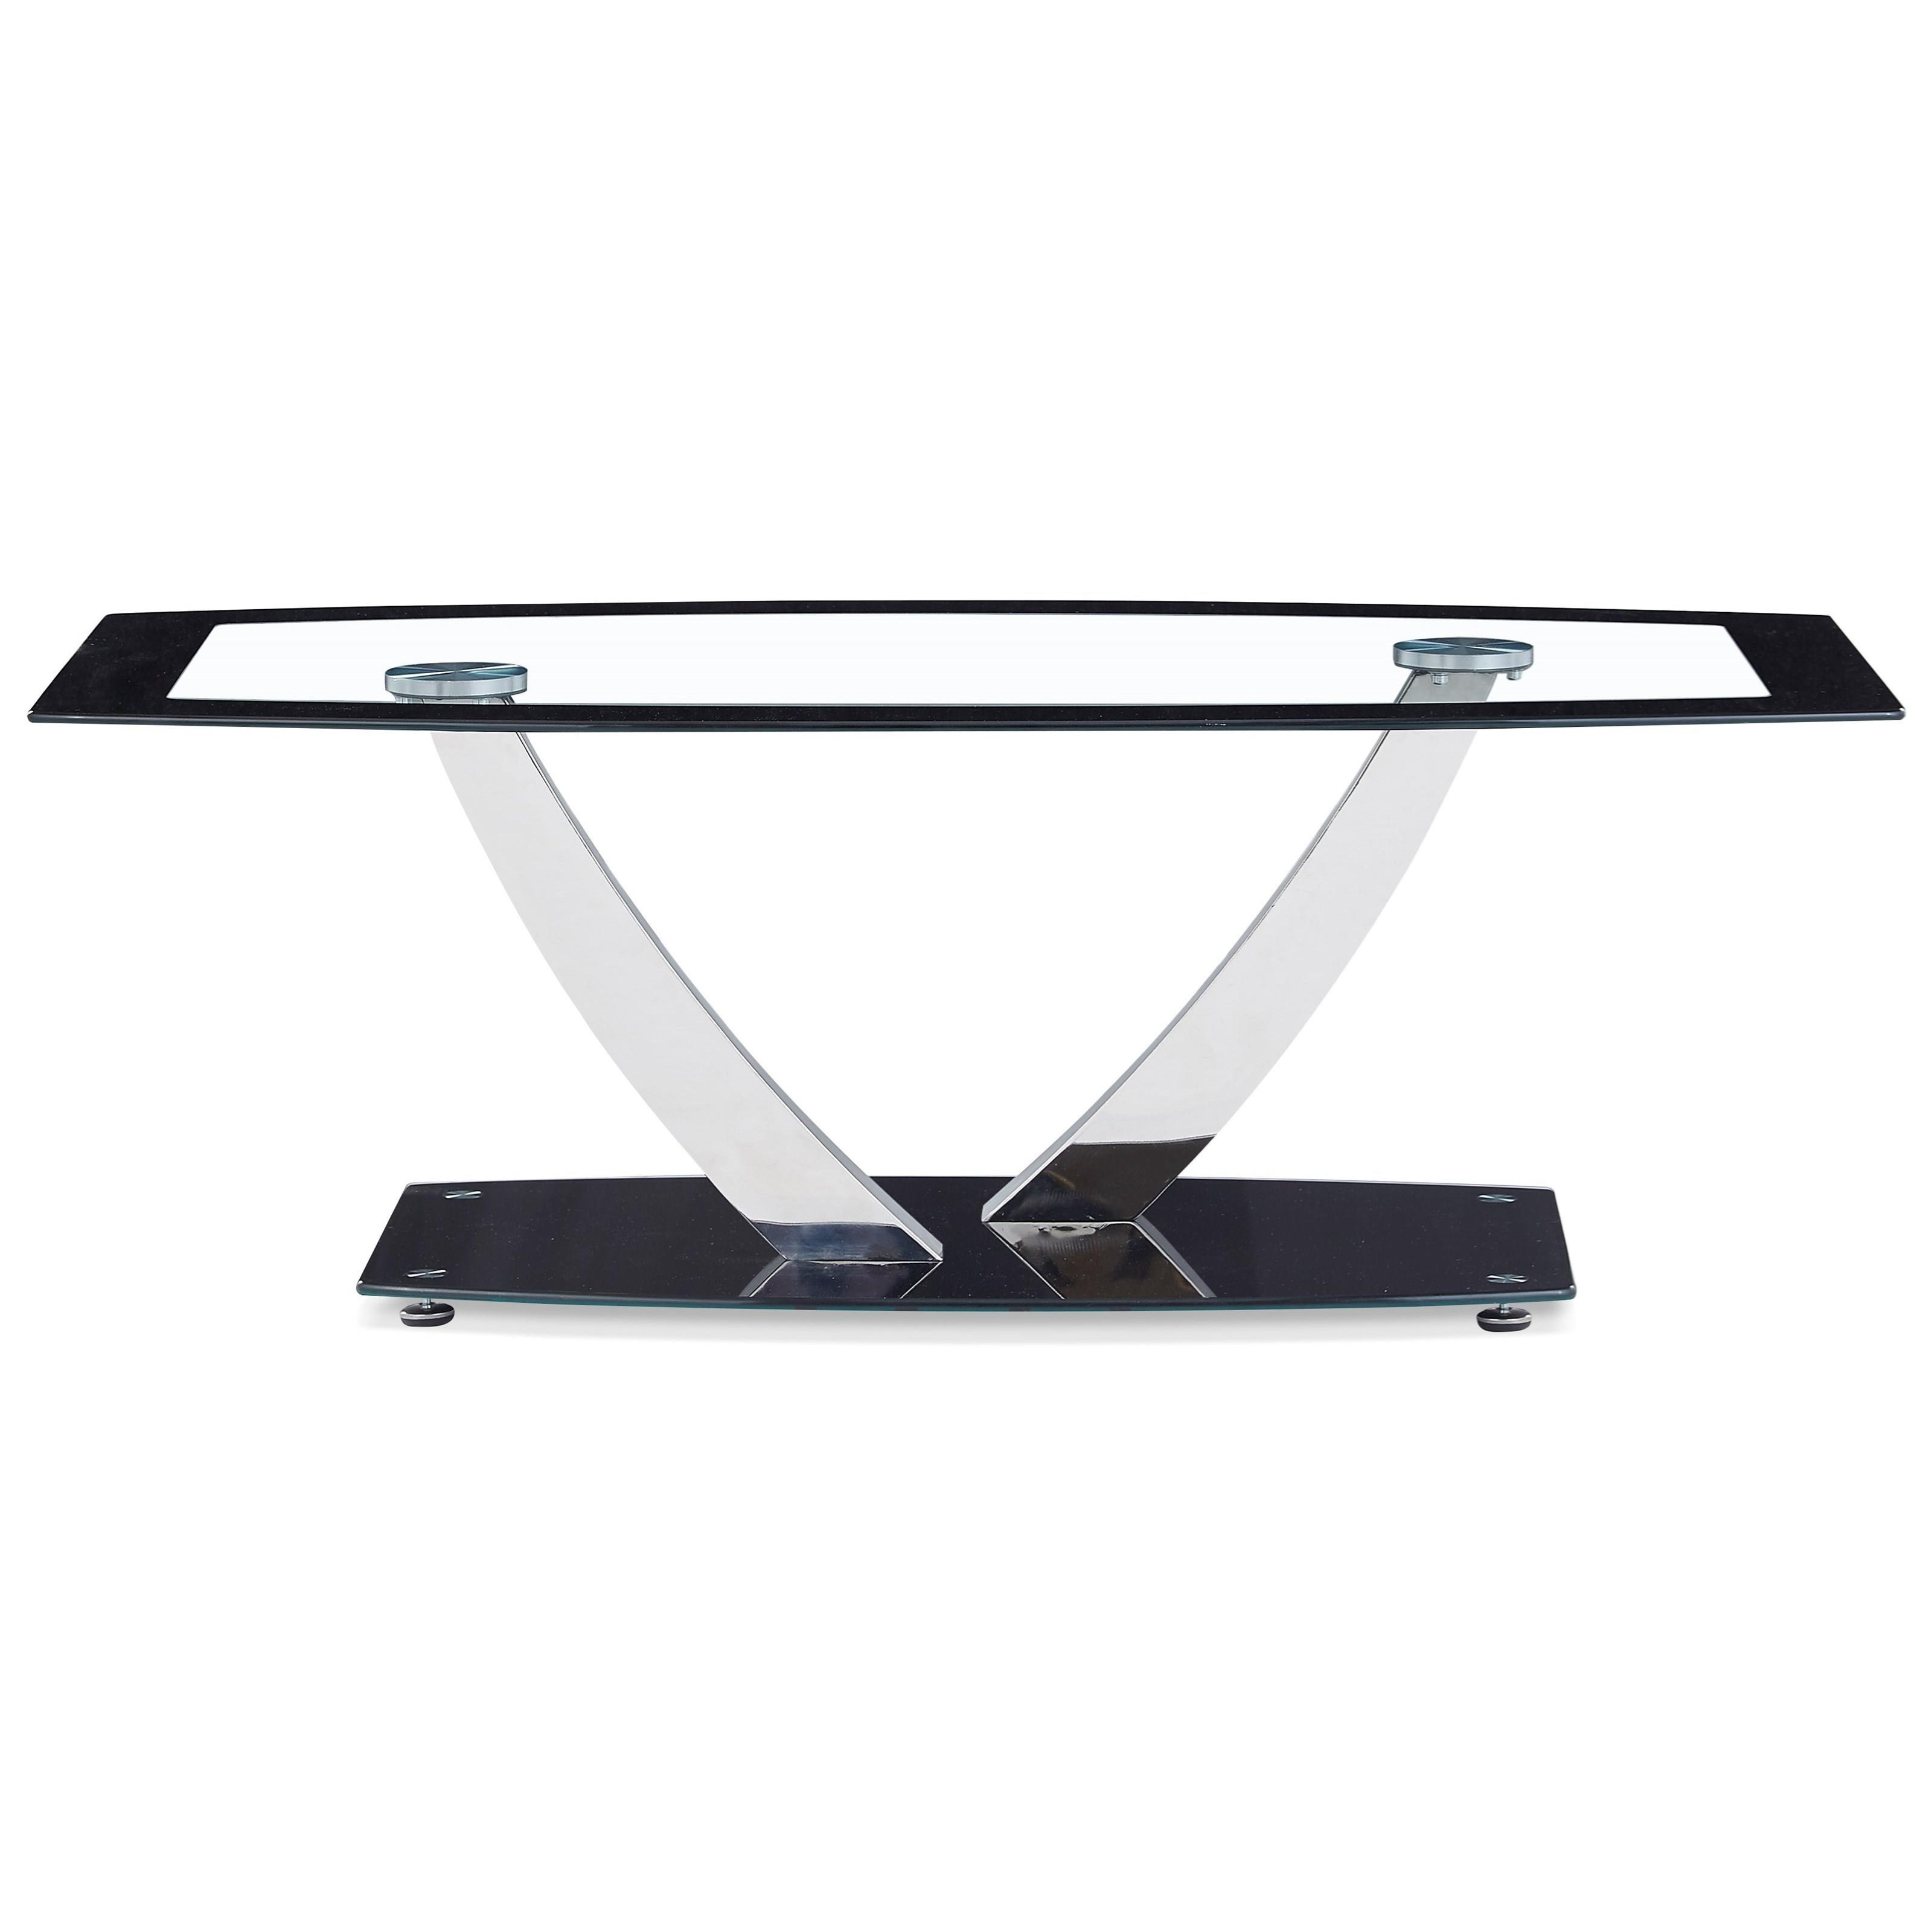 716 Coffee Table by Global Furniture at Dream Home Interiors